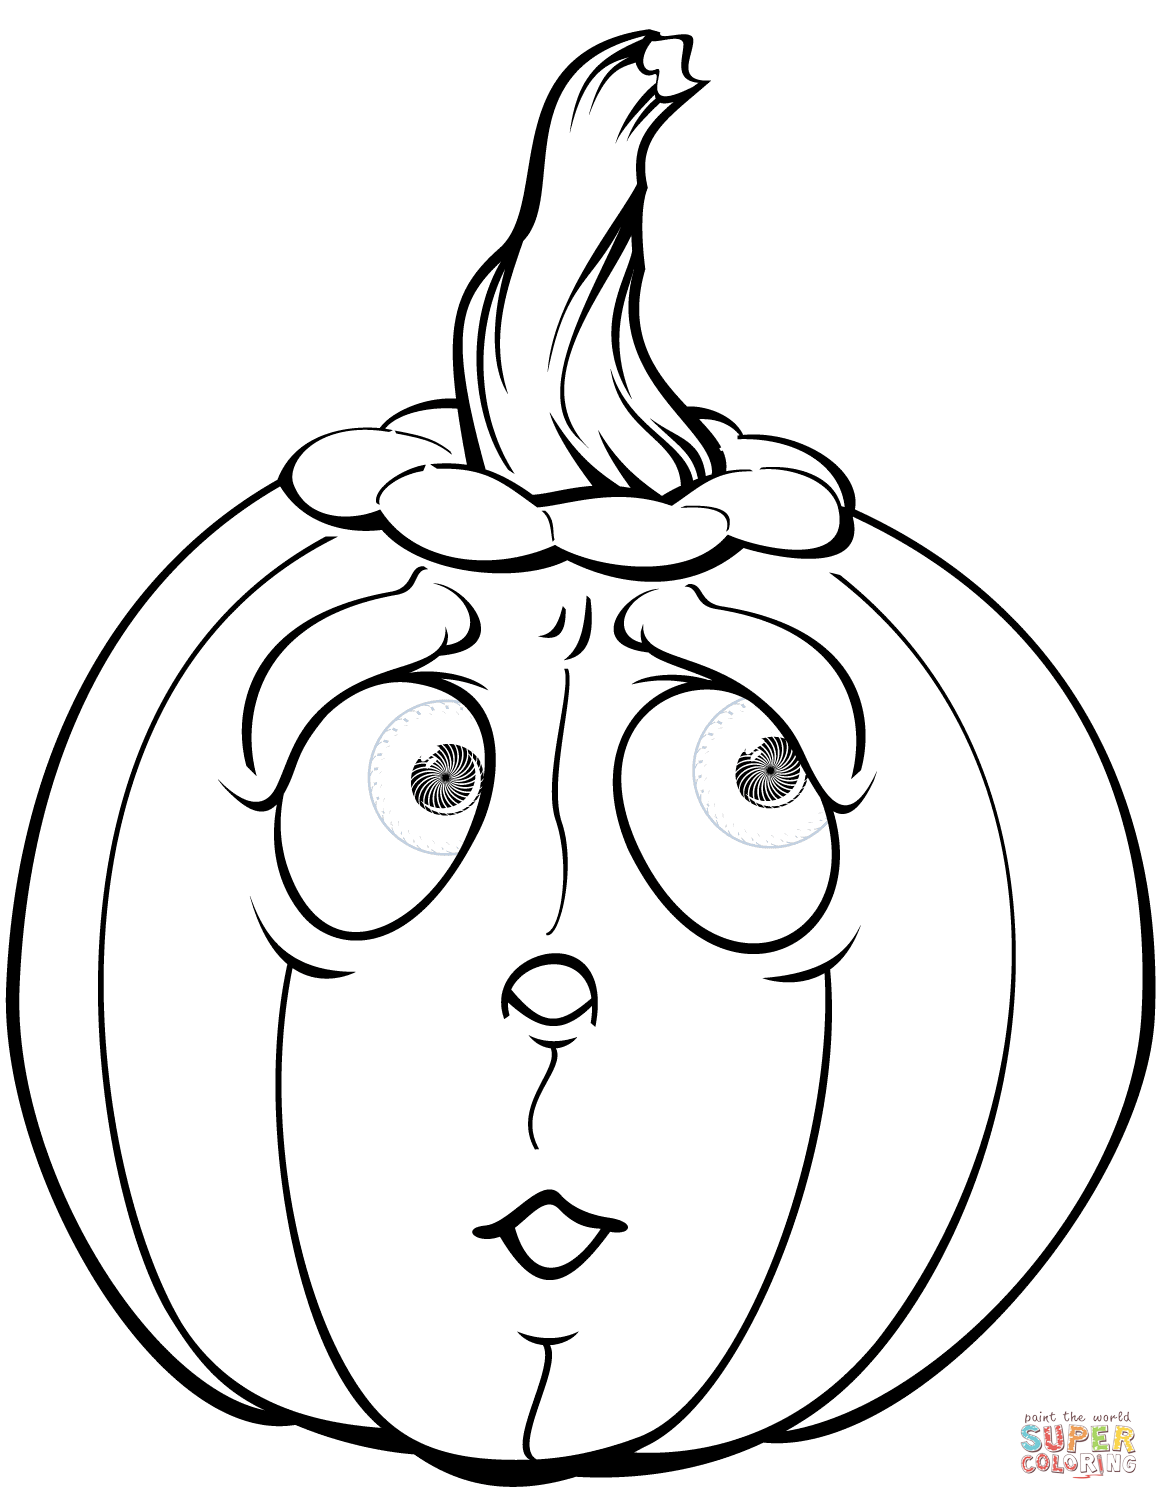 free printable pictures of pumpkins free printable pumpkin coloring pages for kids cool2bkids printable free pictures of pumpkins